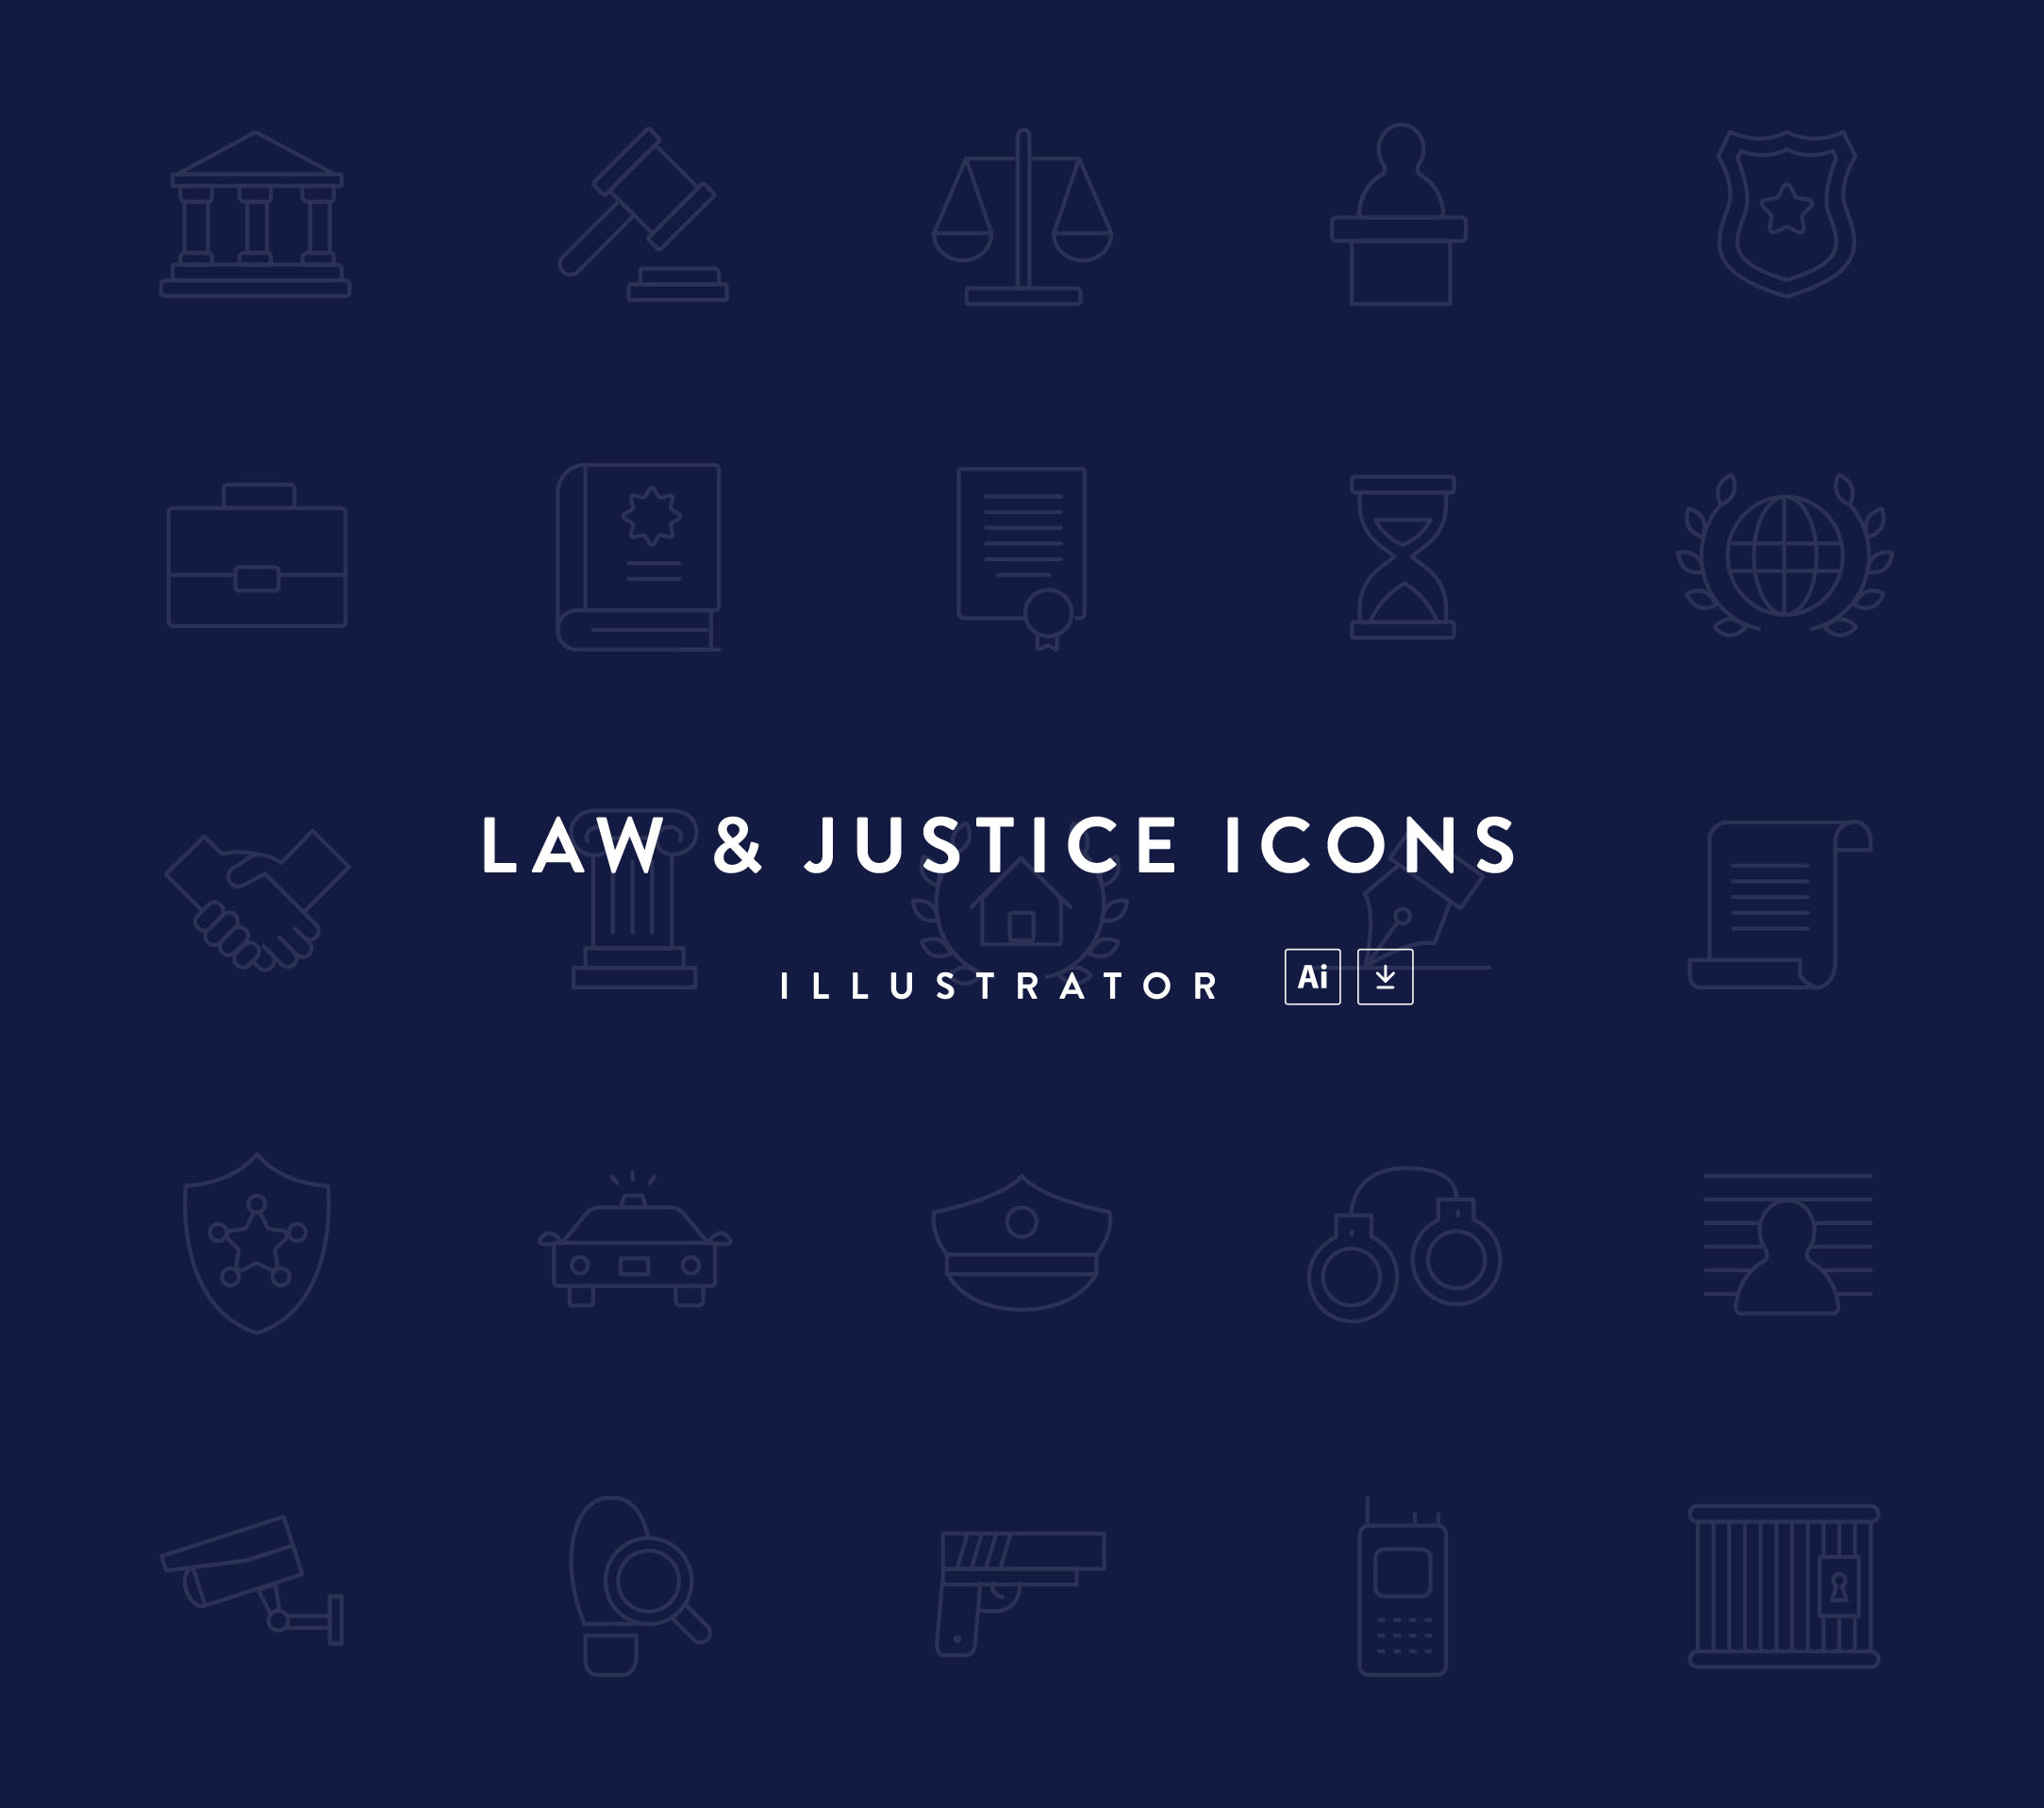 Law & Justice Icons